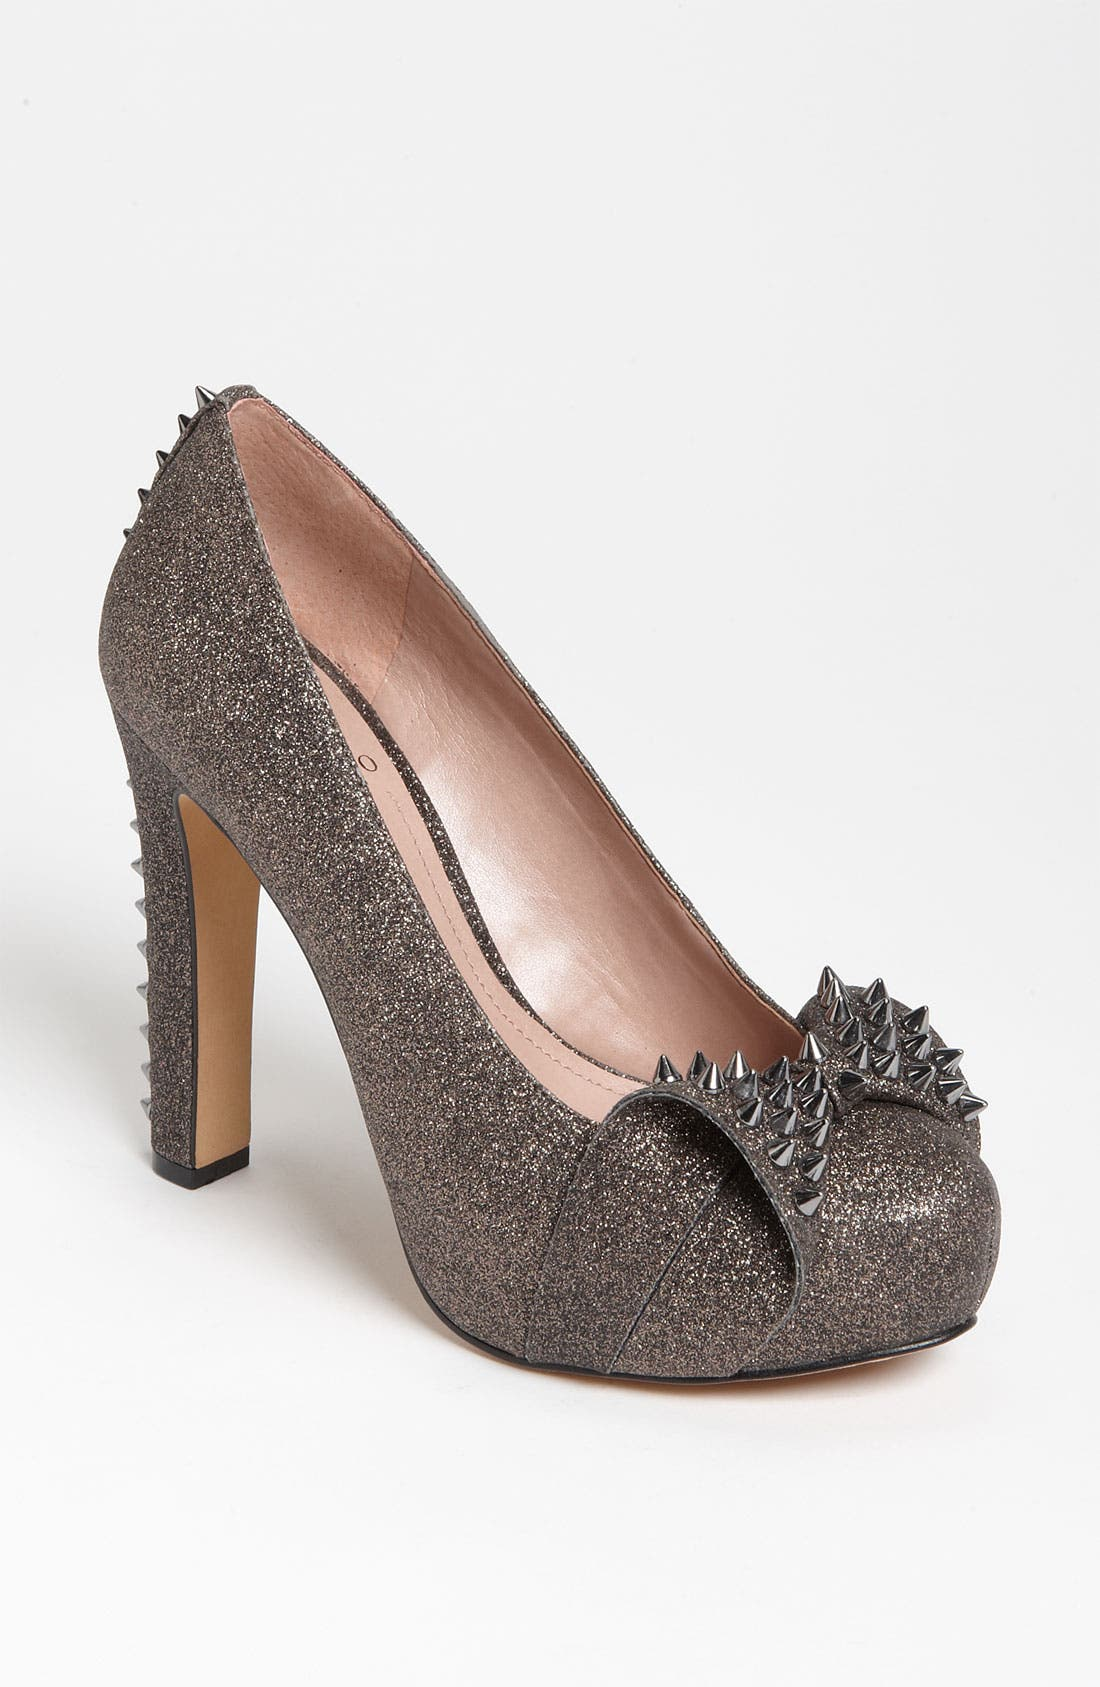 Alternate Image 1 Selected - Vince Camuto 'Jamma' Pump